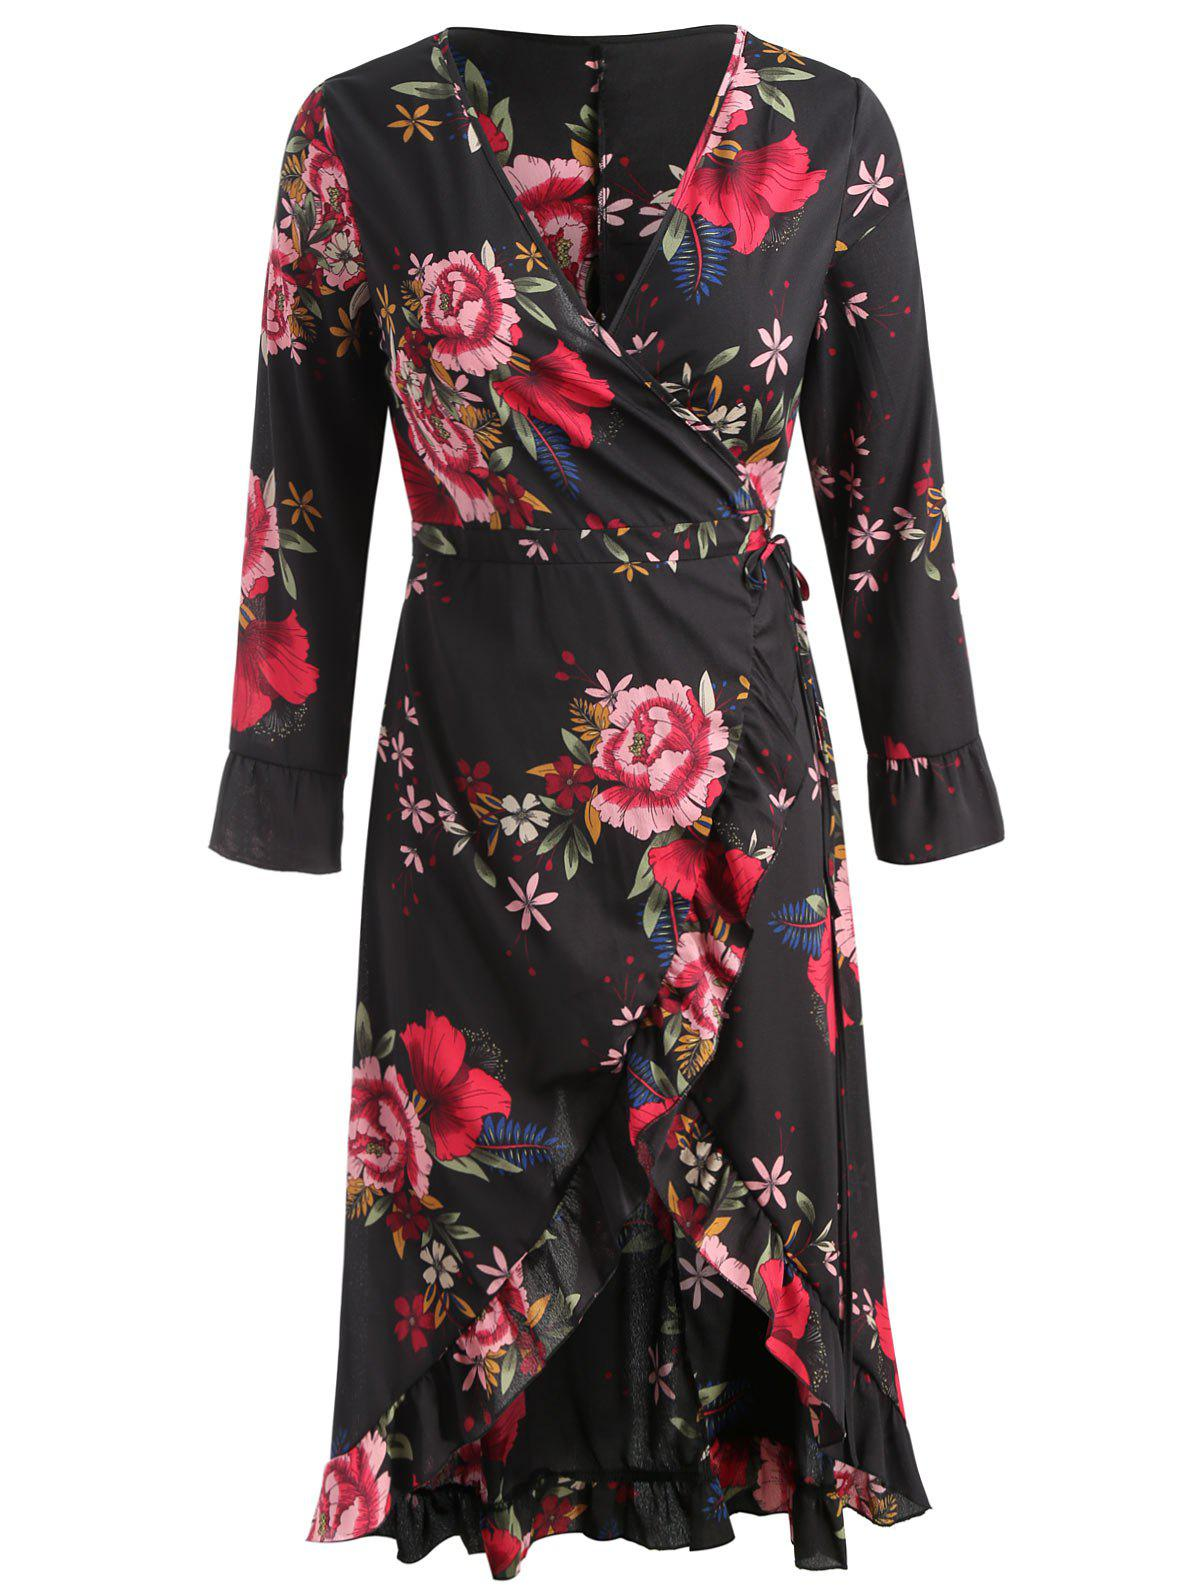 Long Sleeve Plus Size Floral Wrap Dress - BLACK 2X